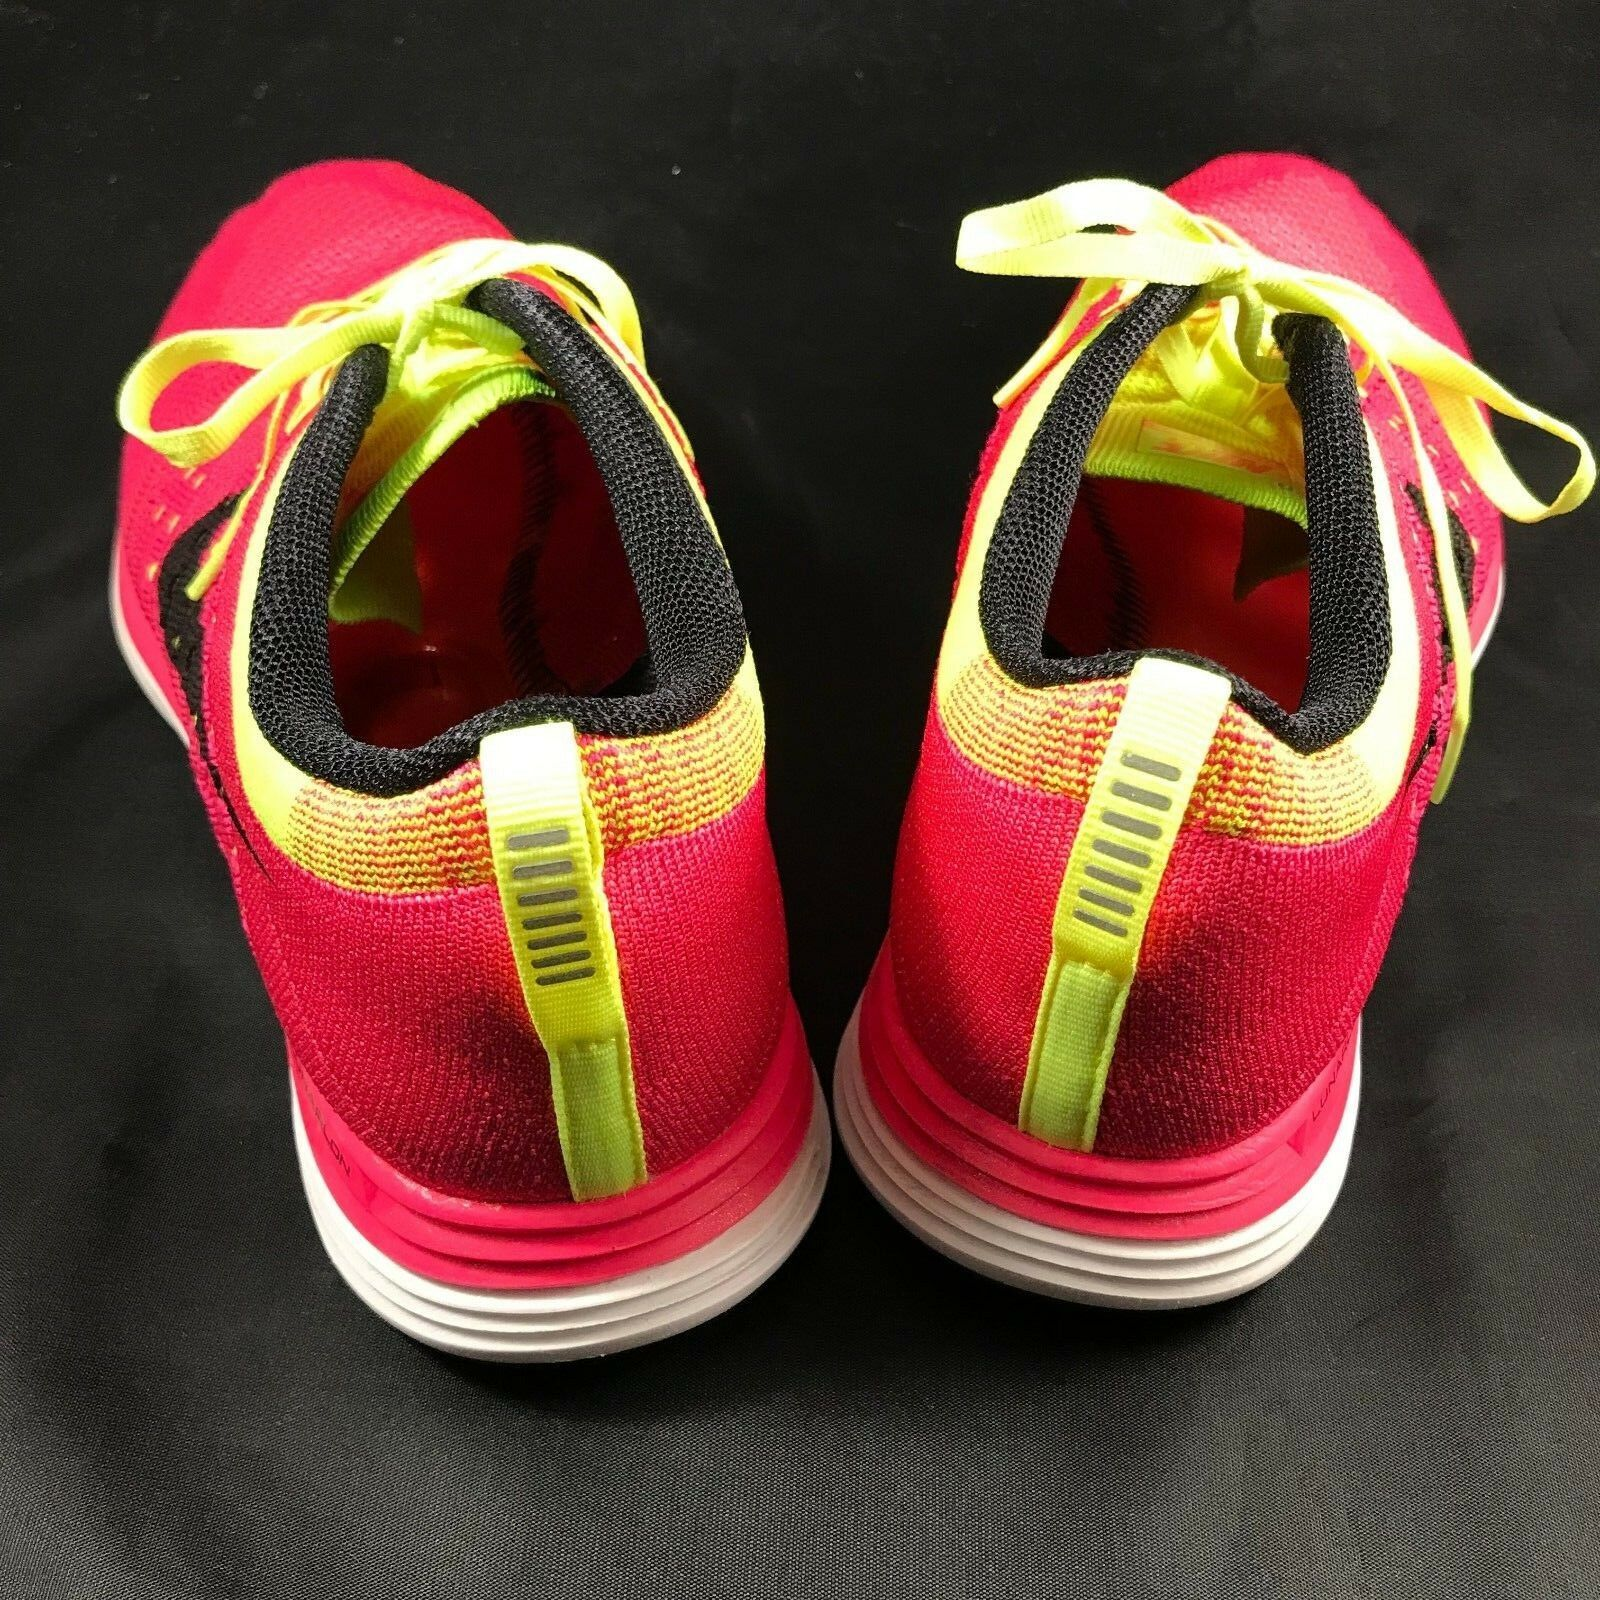 reputable site d2cba 45801 ... ireland nike flyknit lunar 1 femmes 10 42 eur 150 trim bright fuchsia  with volt trim